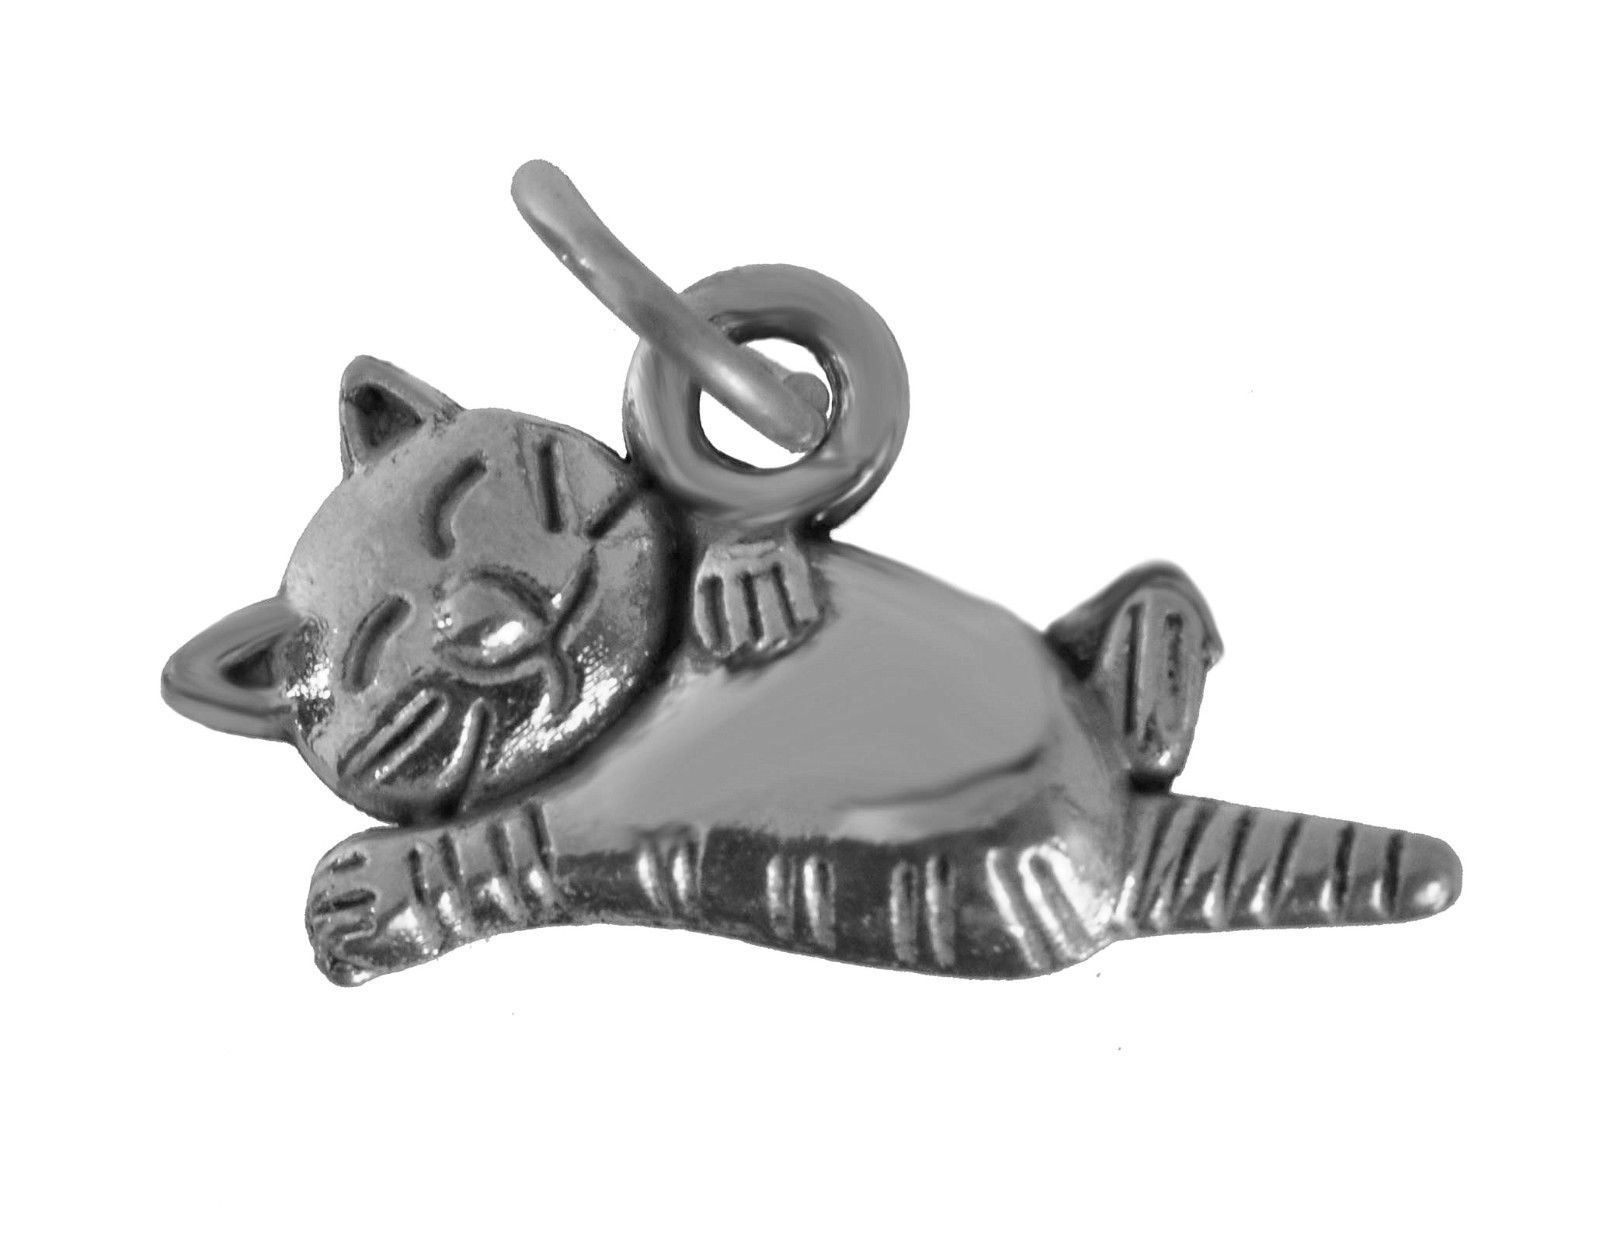 NICE Sterling Silver Cartoon Sleeping Fat Cat Vacation relax unwind Lazy Kitty c